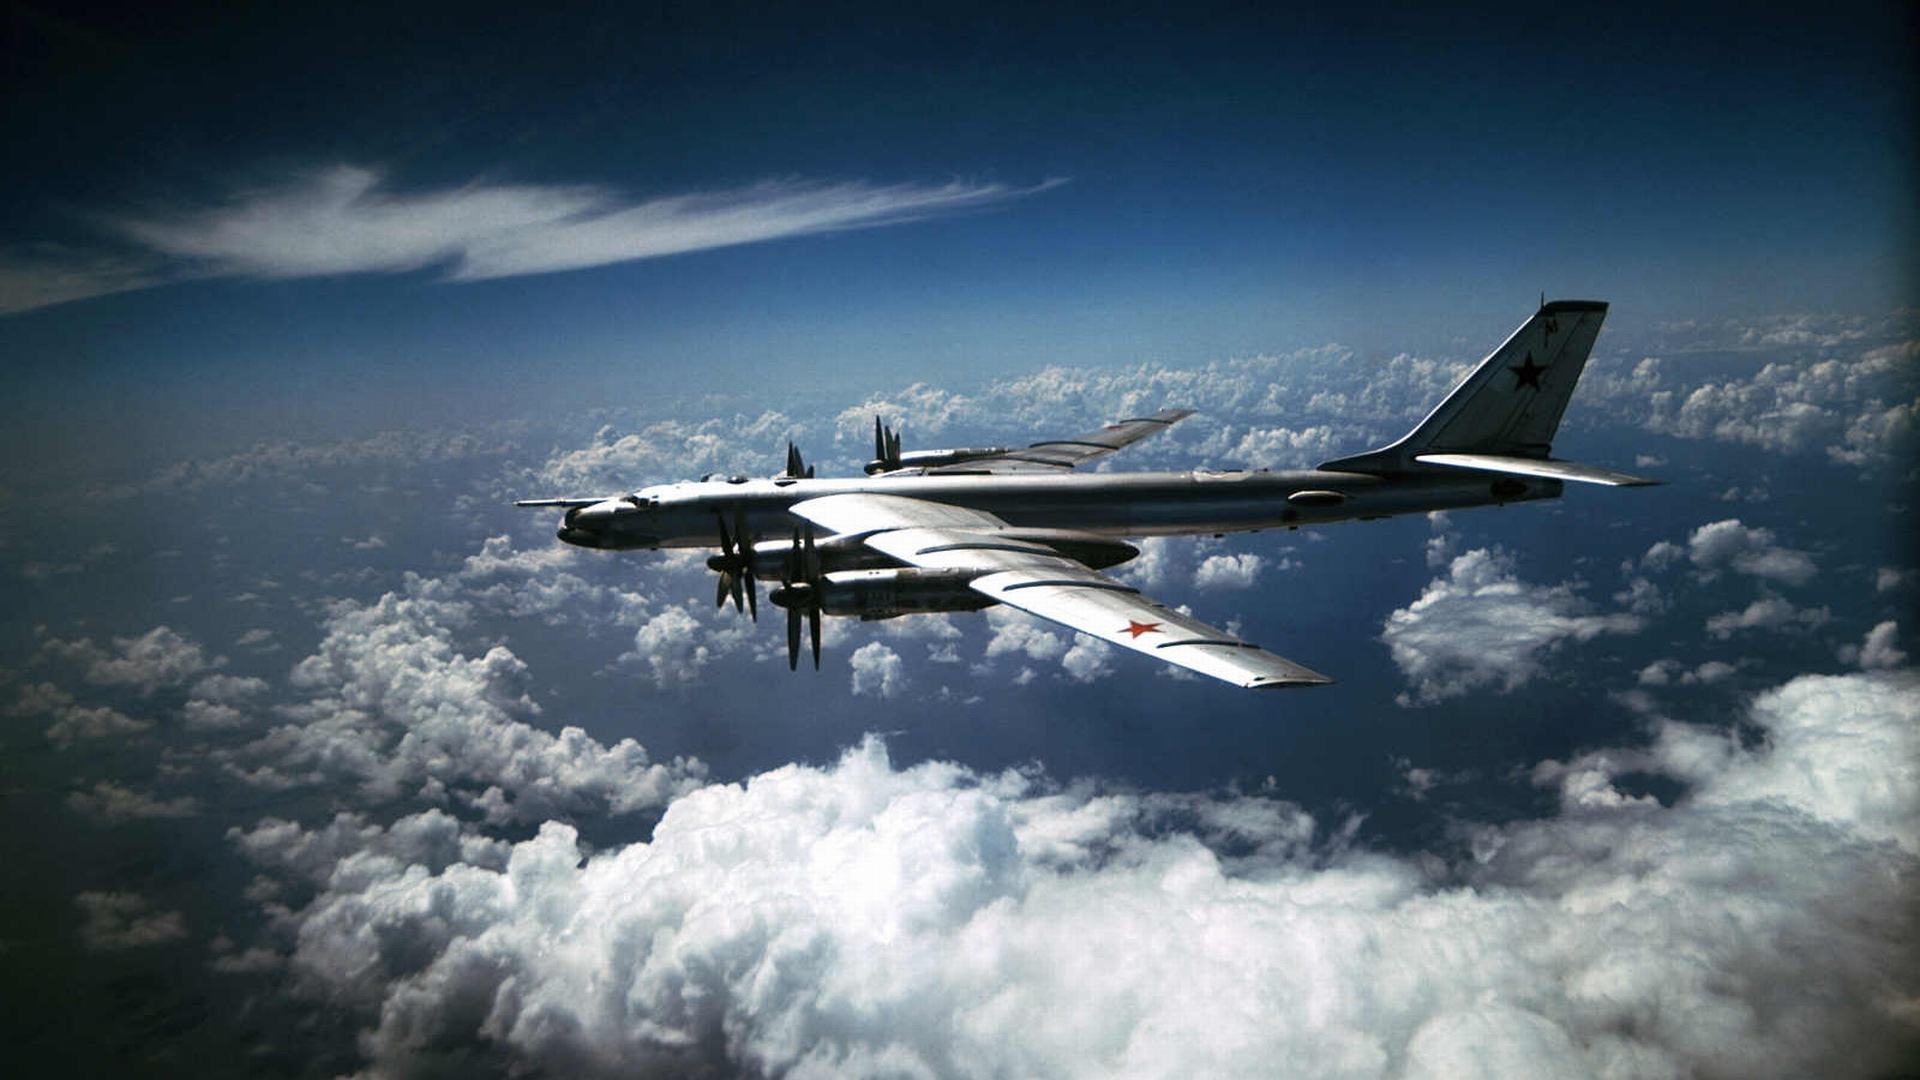 Tu 95 wallpapers and images - wallpapers, pictures, photos